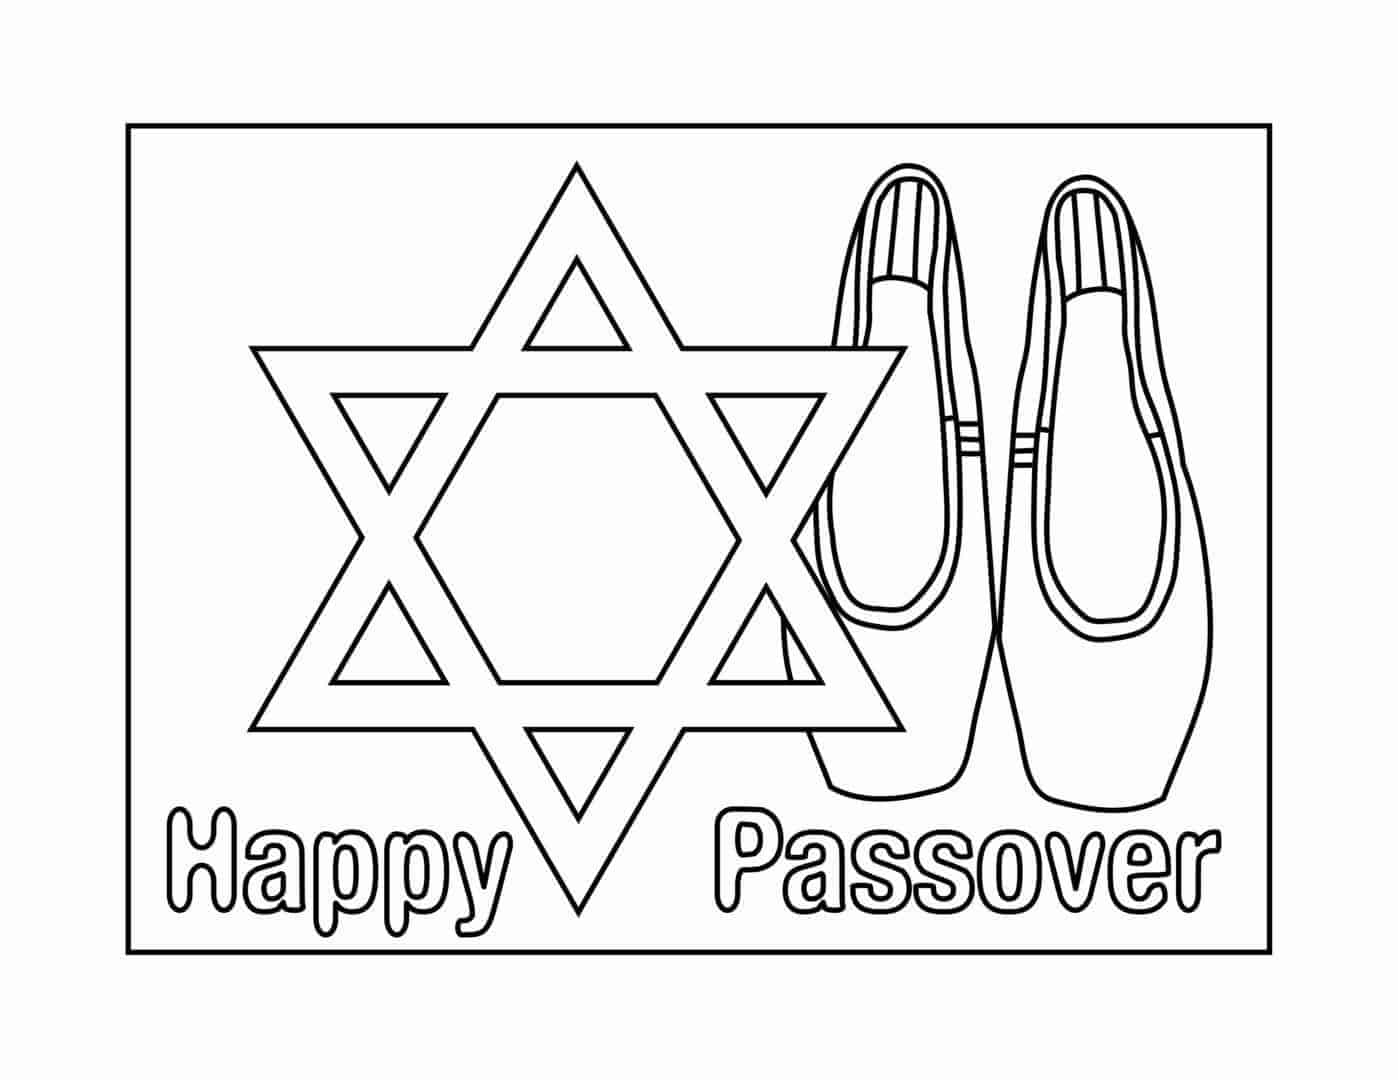 Passover Coloring Page-01